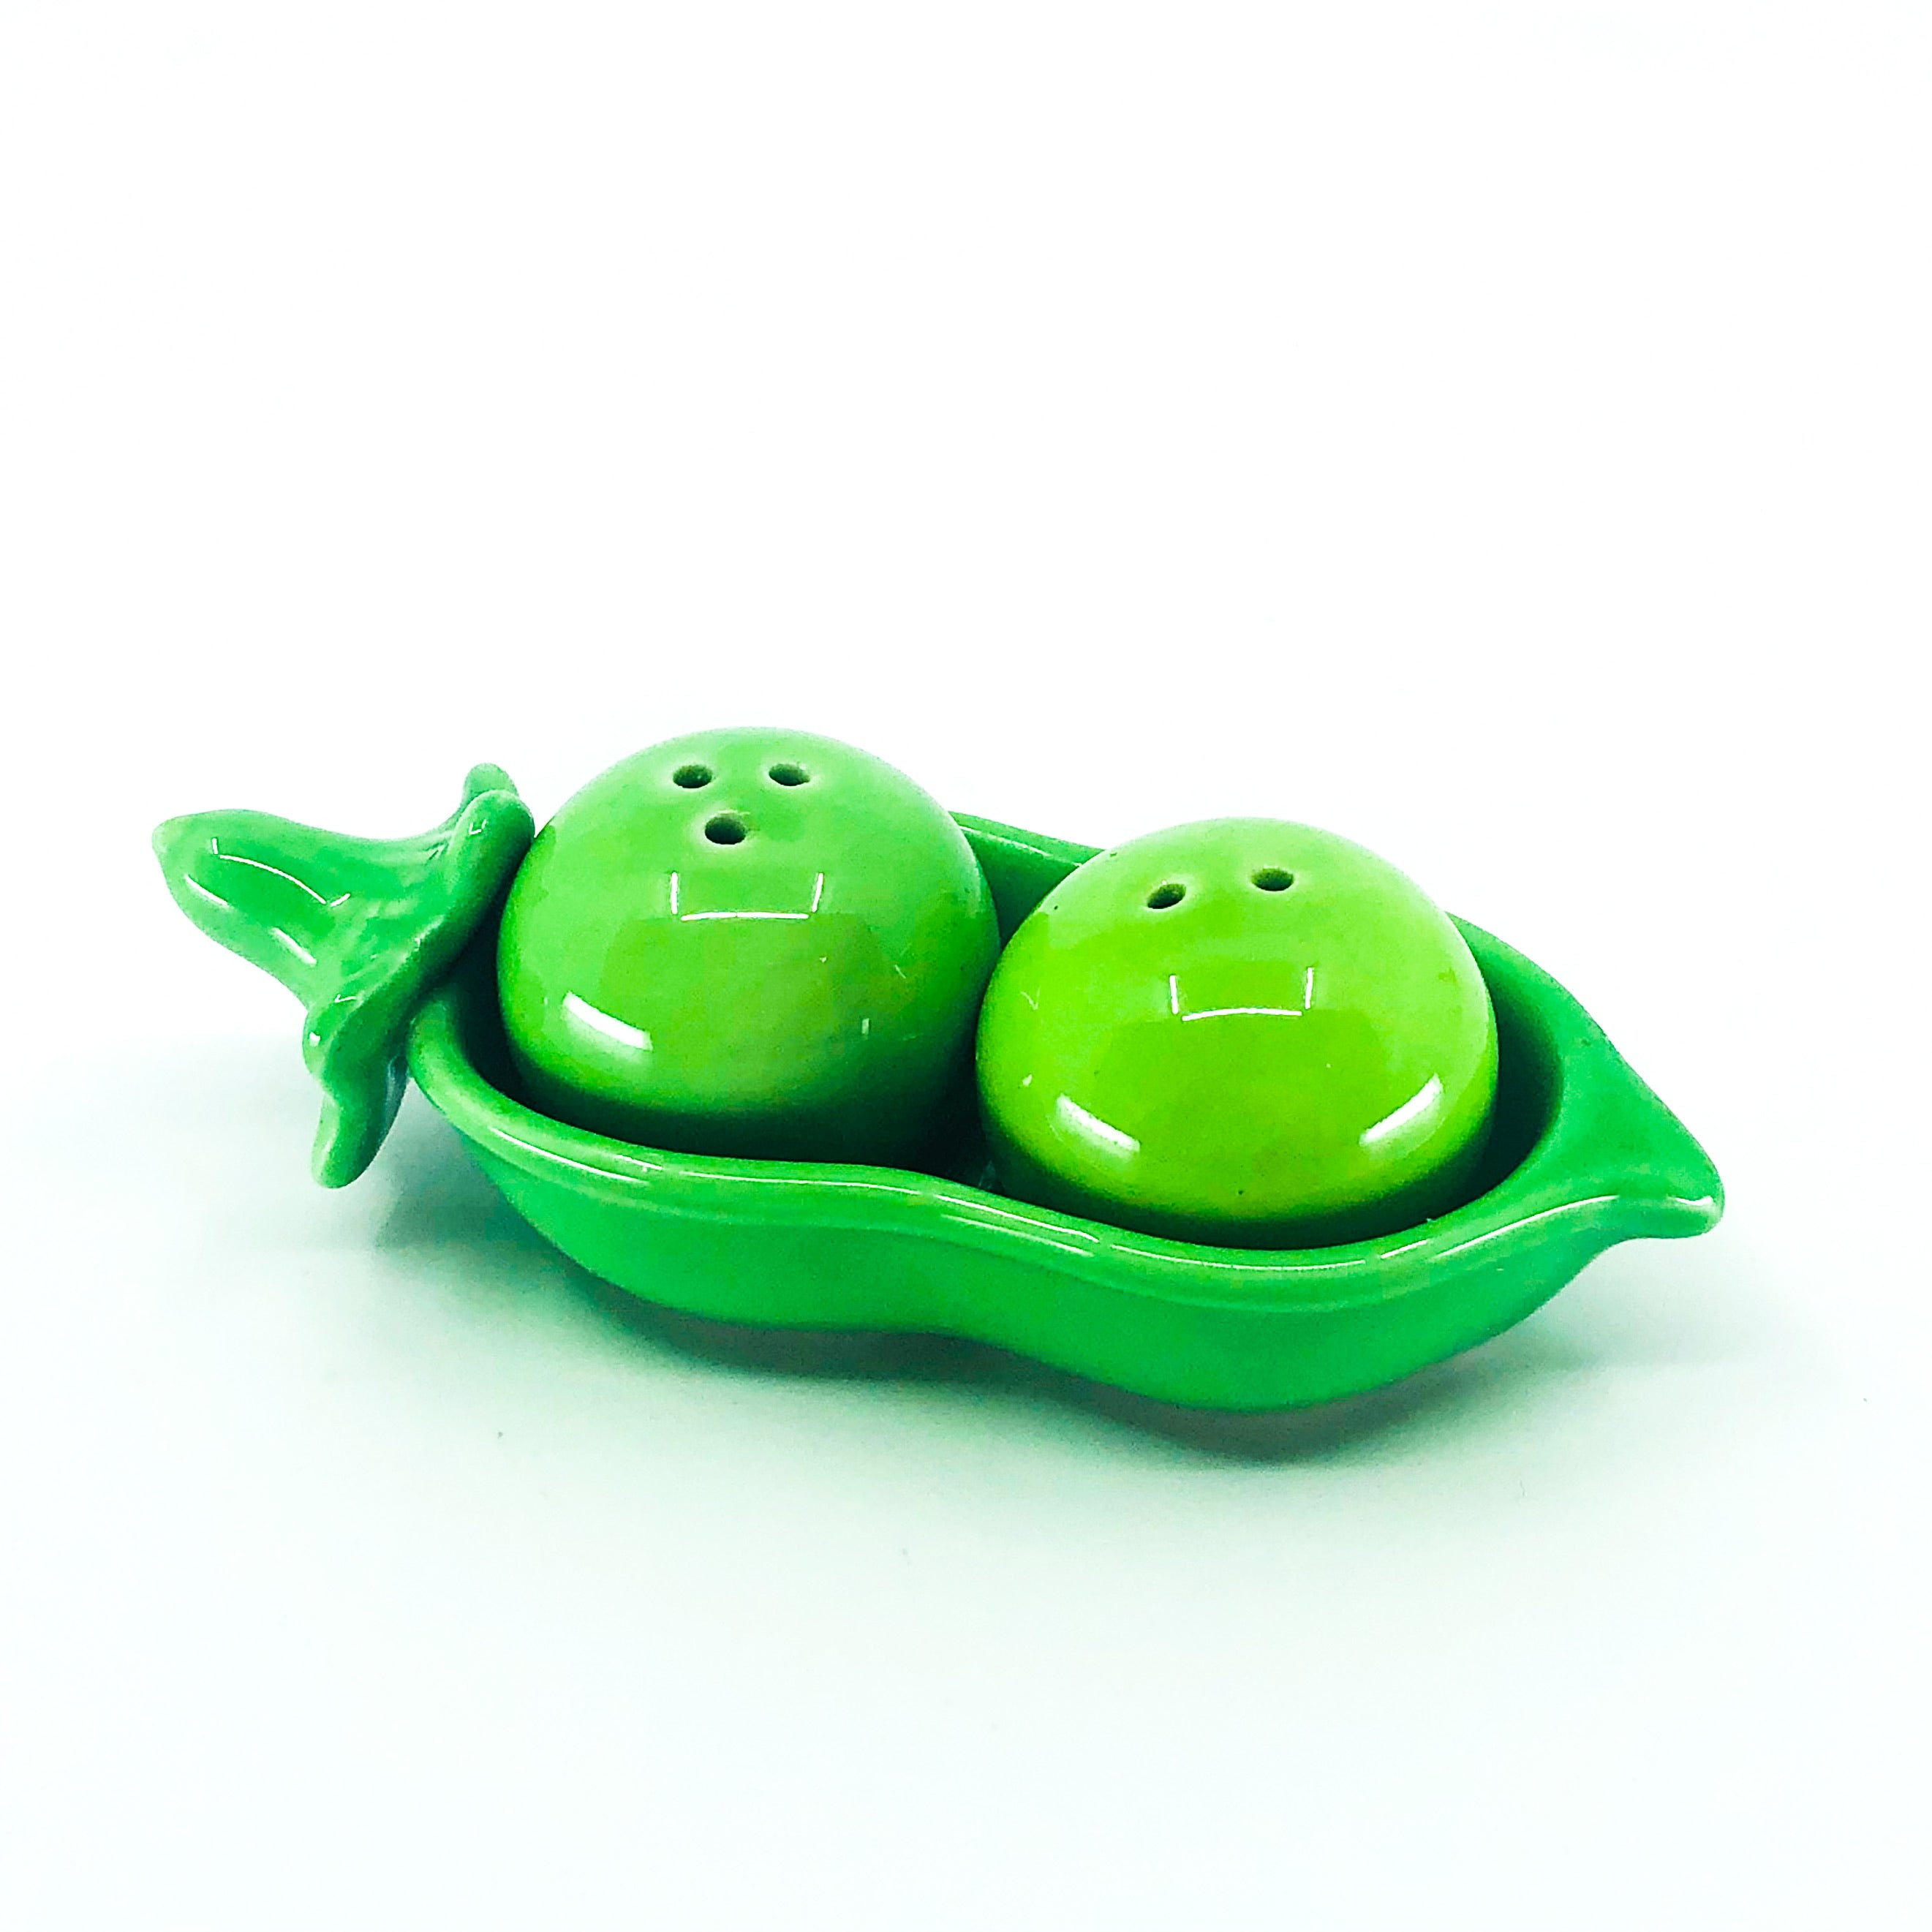 2 Peas in a Pod Ceramic Salt & Pepper Shaker